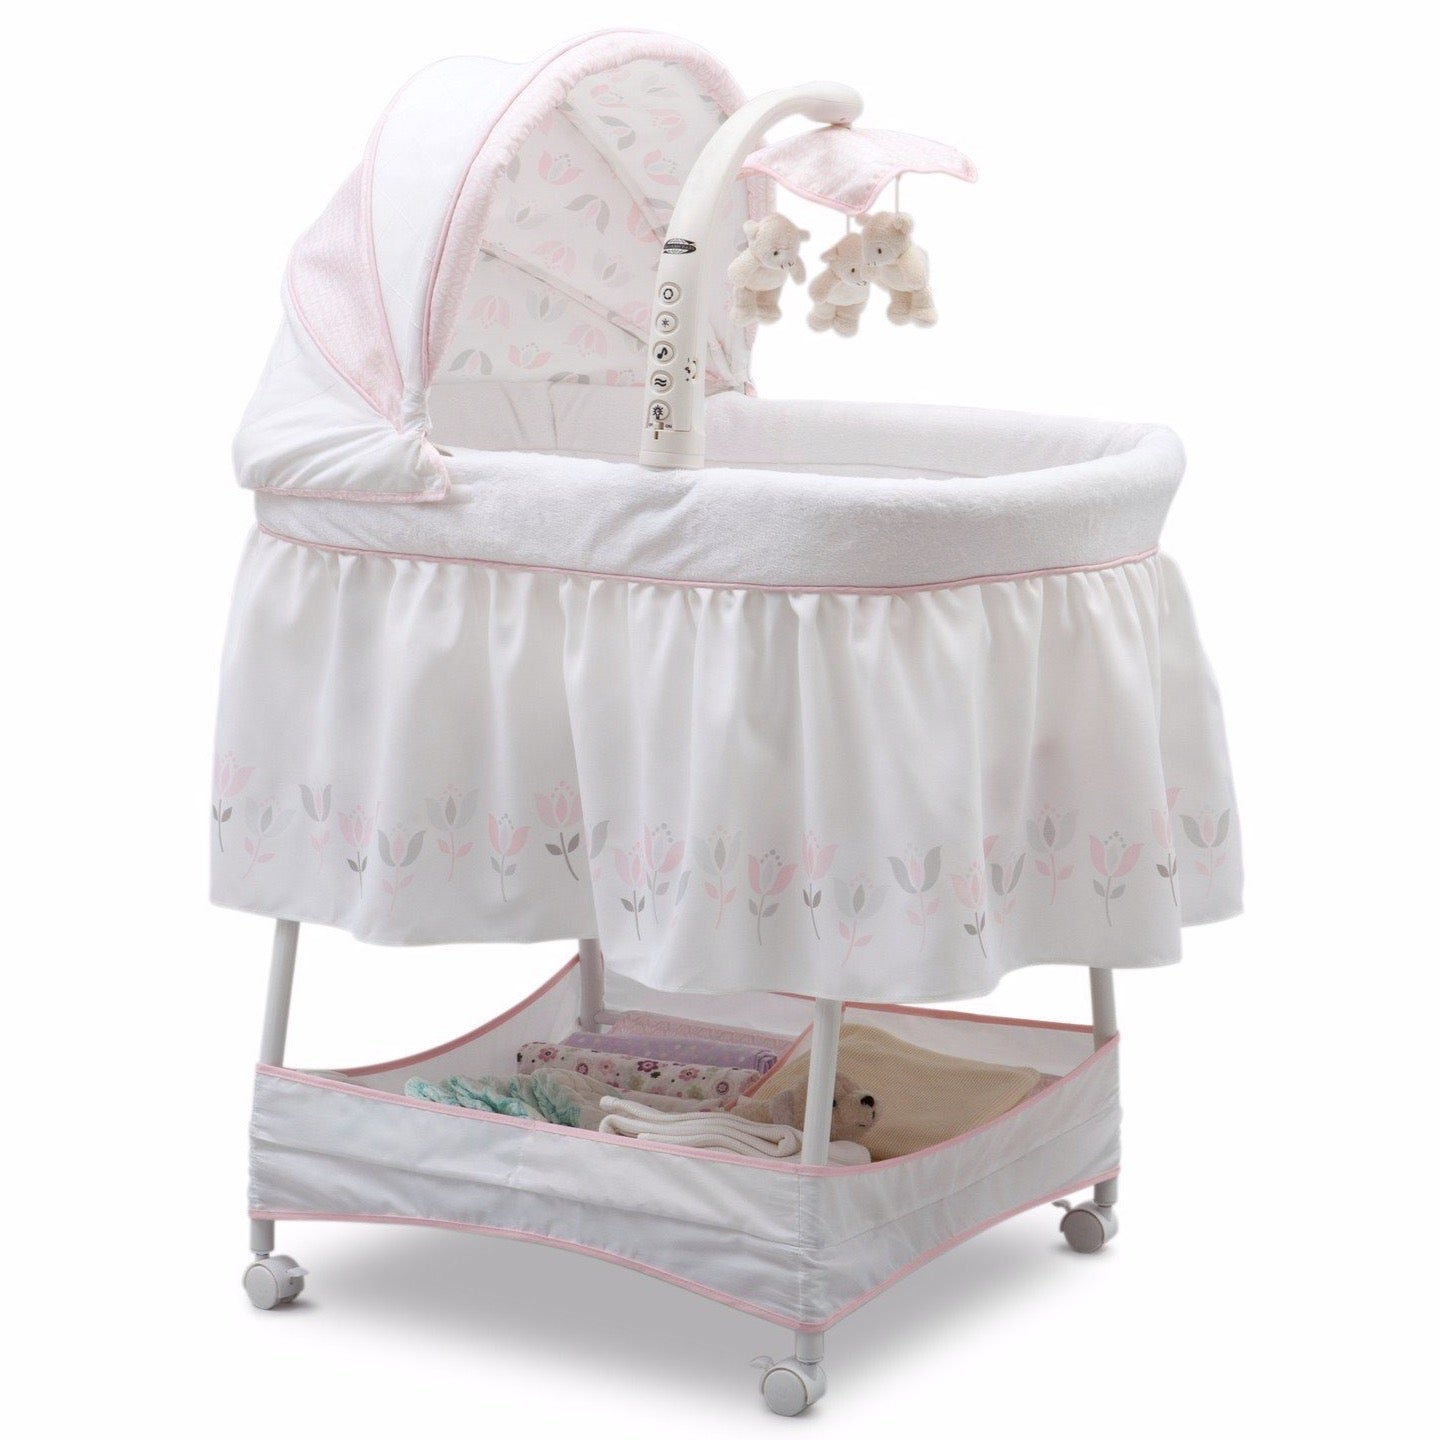 Delta Children Tulip Garden (665) Slumber Time Elite Gliding Bassinet, Right Side View e1e